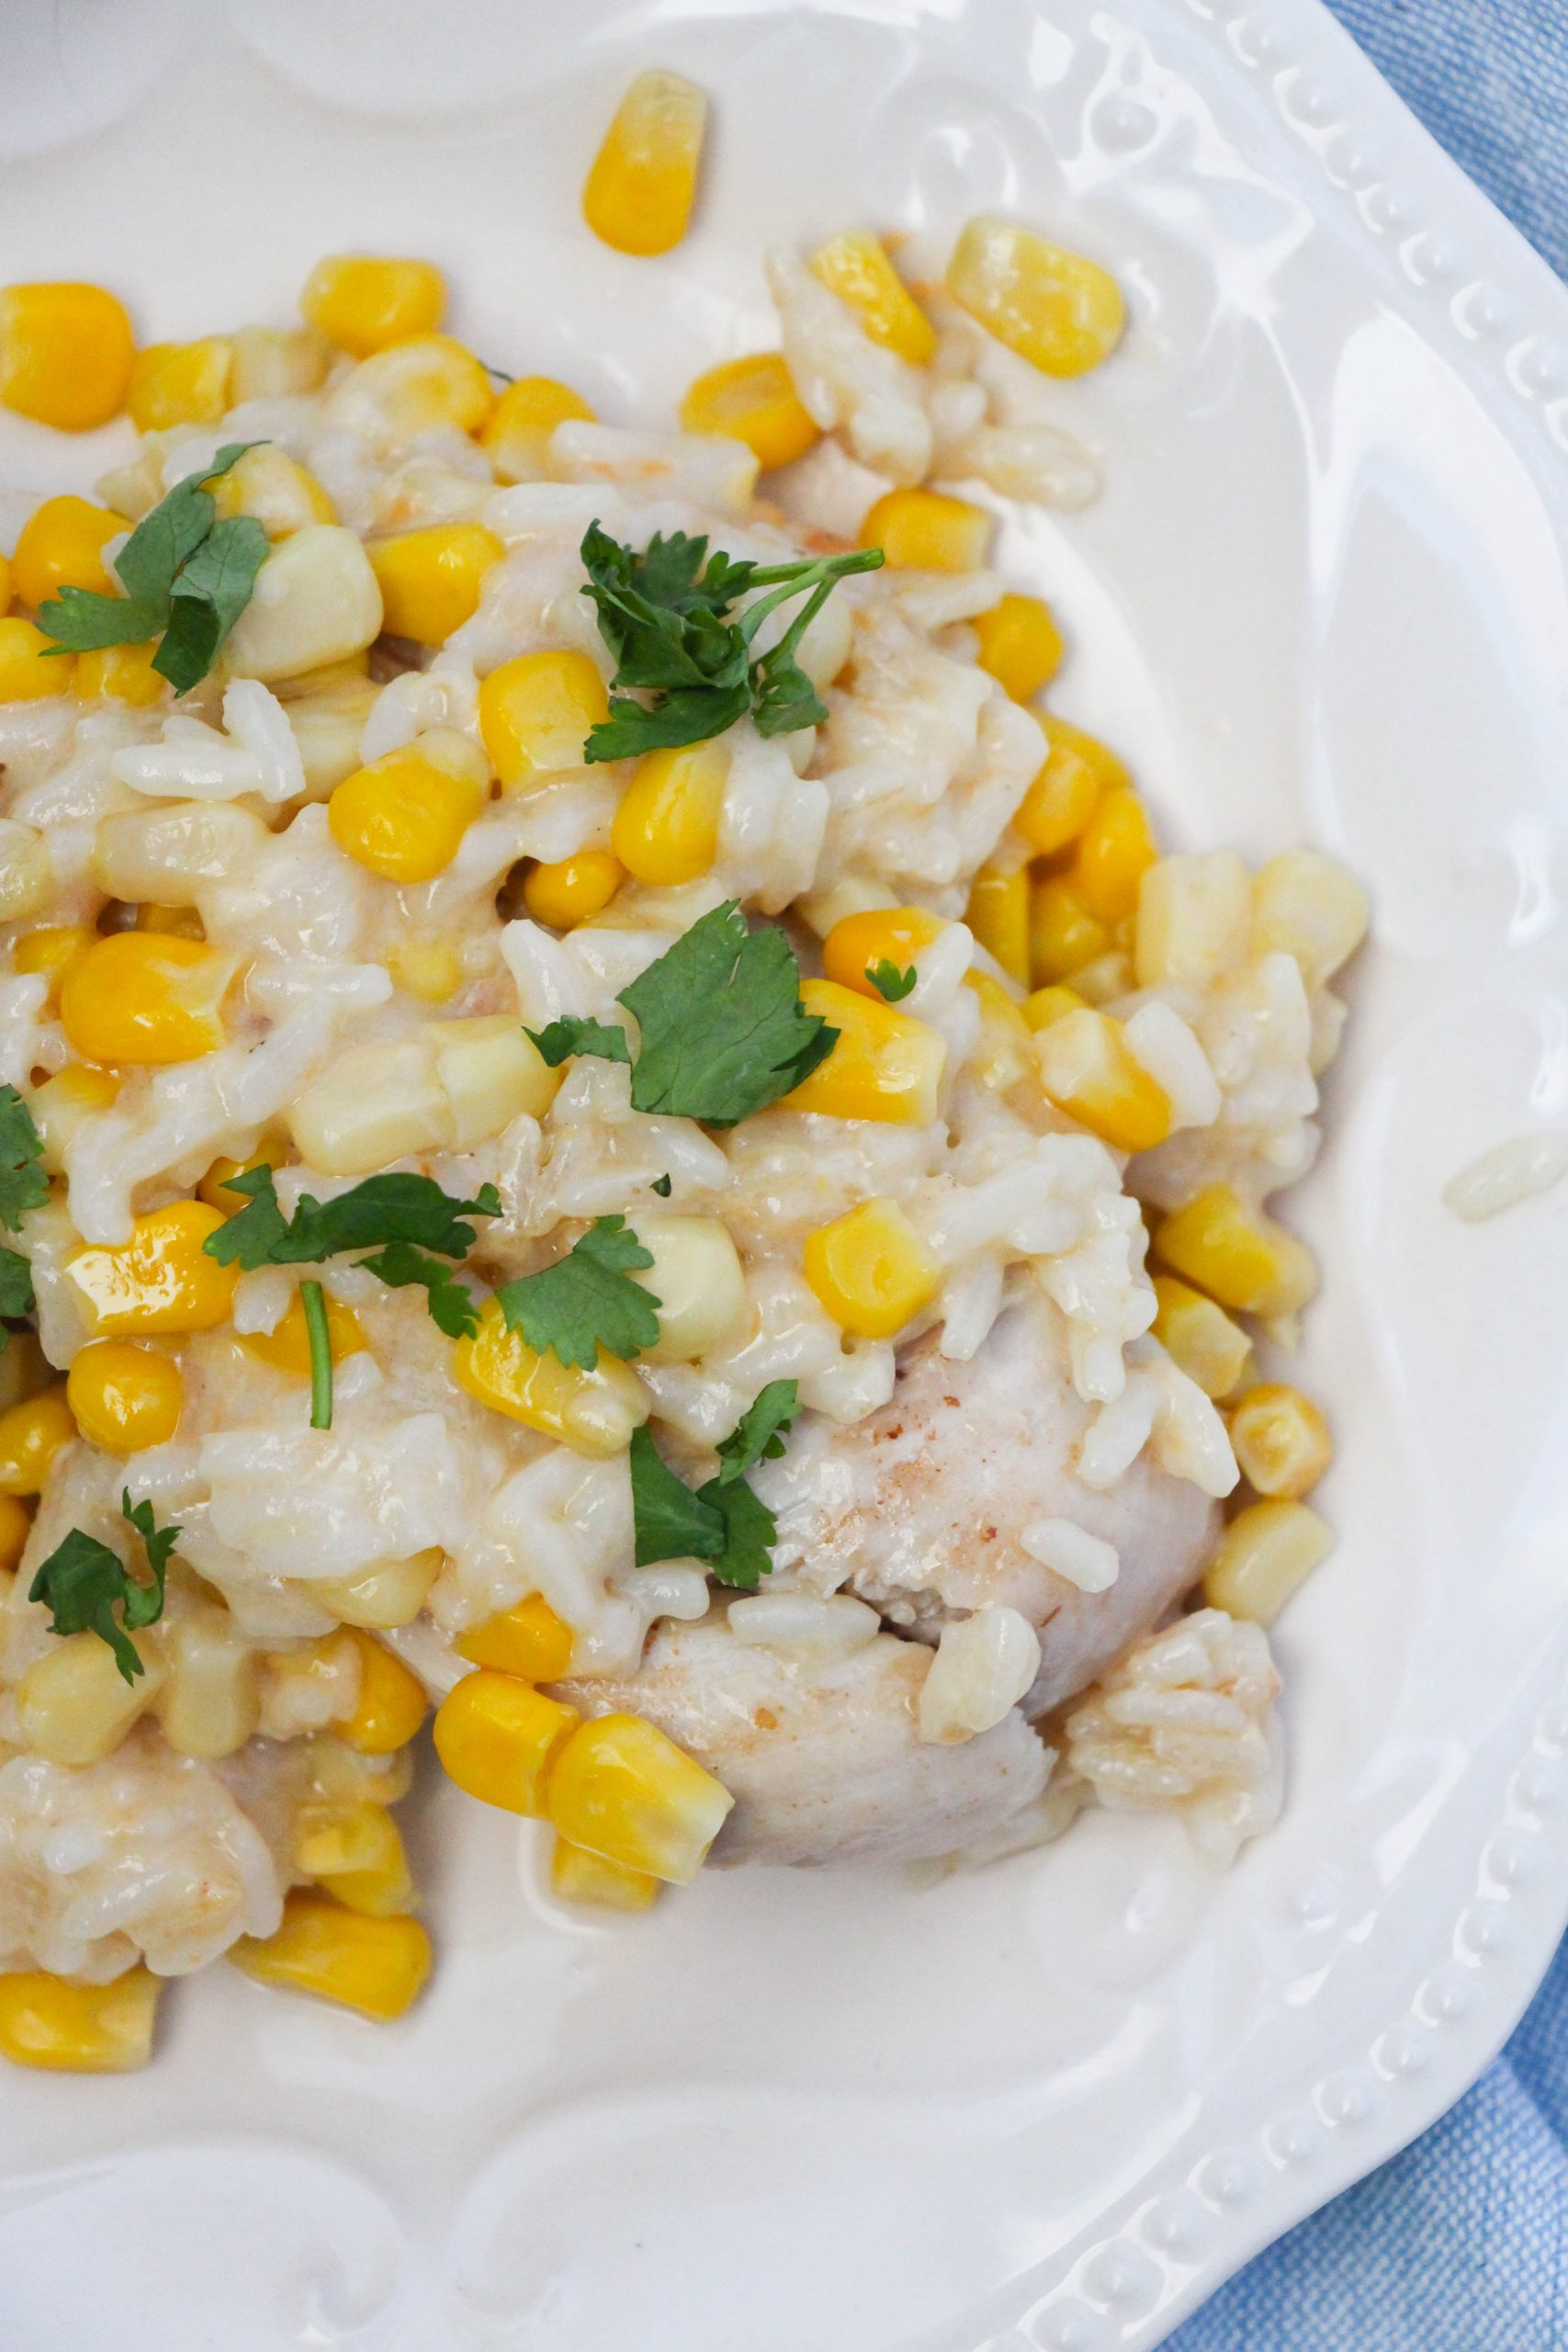 featured image showing the finished chicken and rice recipe